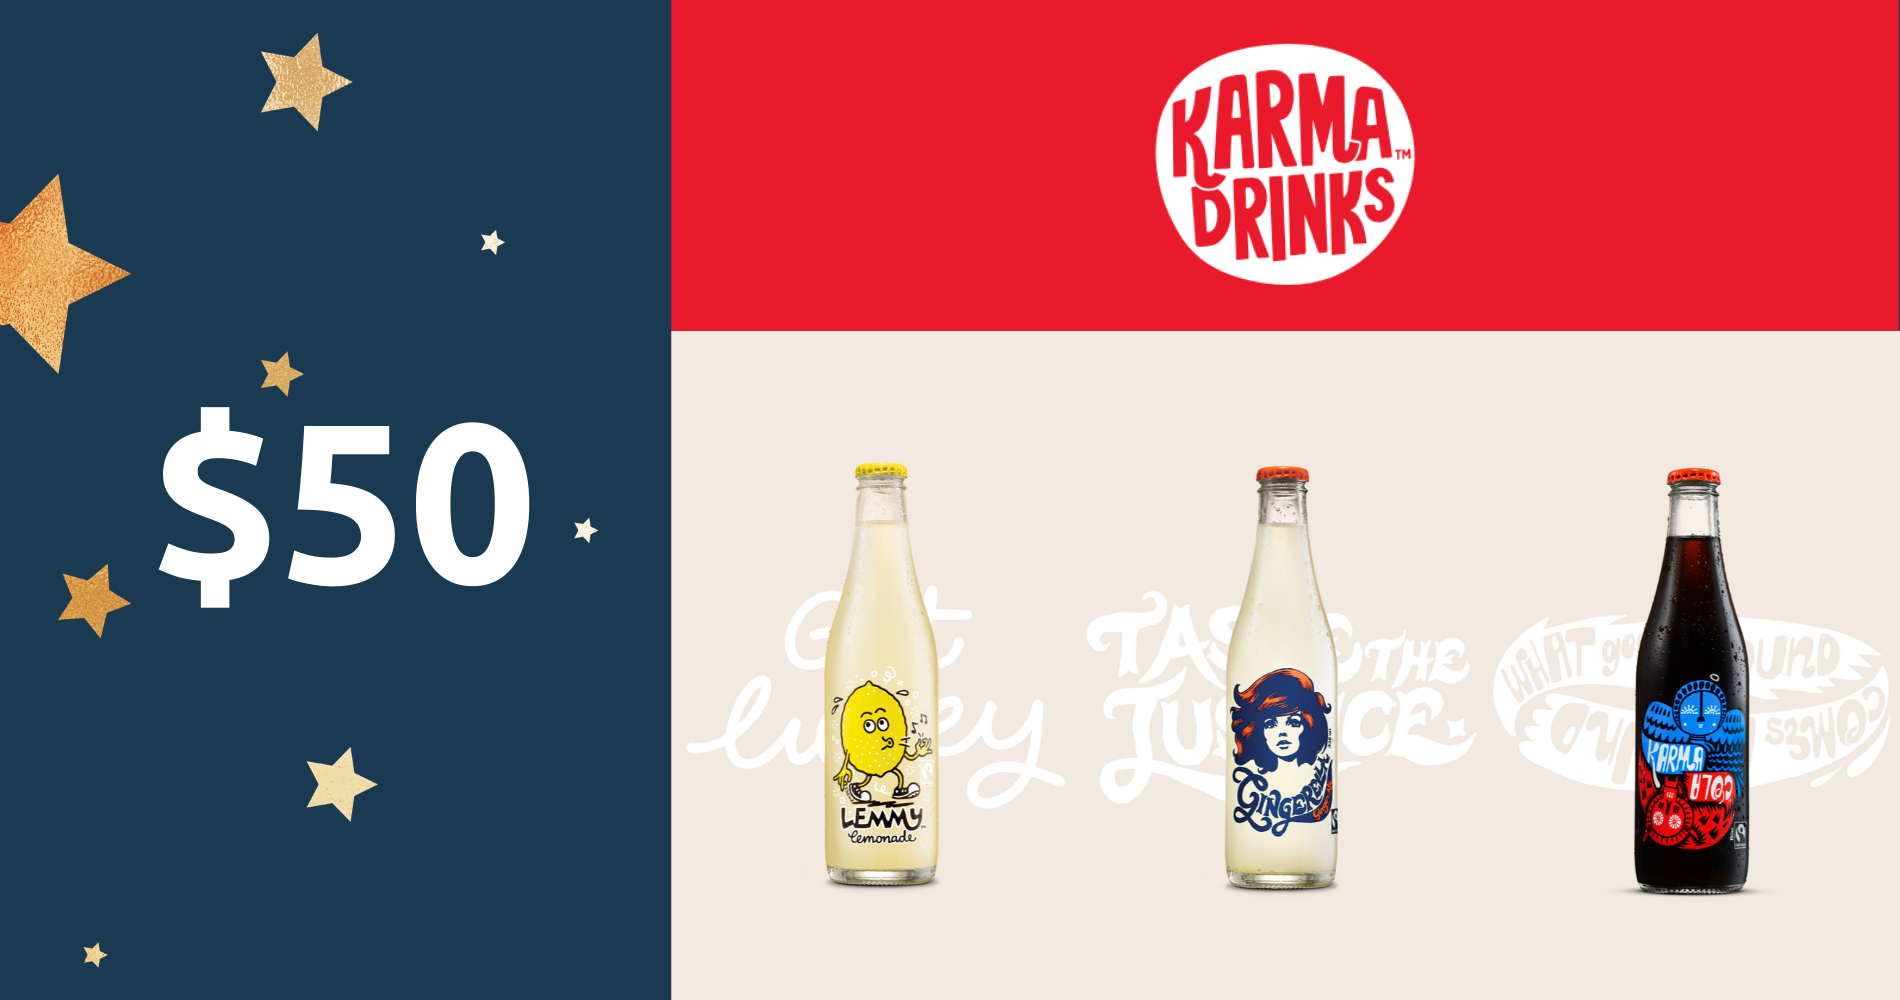 Delicious Karma Drinks!